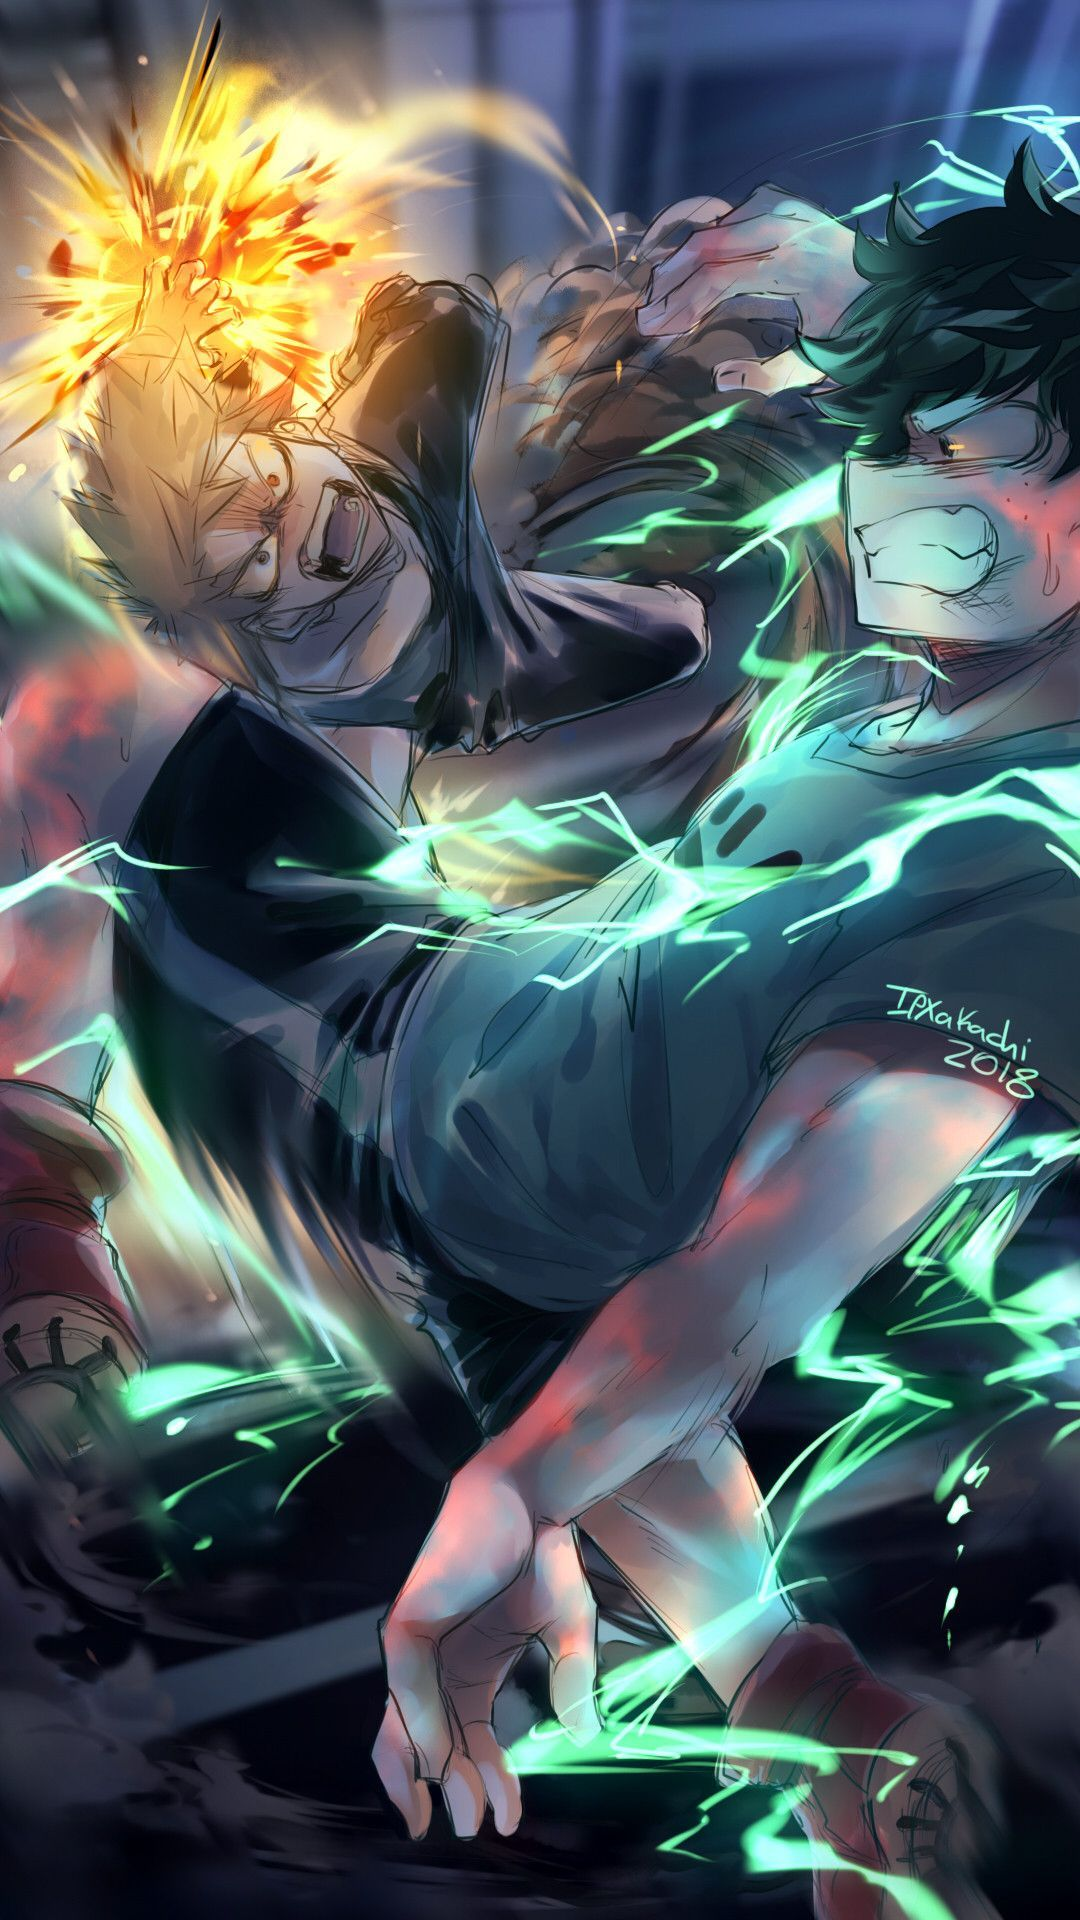 My hero academia wallpapers ,images ,backgrounds ,photos and pictures in 4k 5k 8k hd quality for computers, laptops, tablets and phones. Bakugou X Deku Wallpapers - Top Free Bakugou X Deku ...